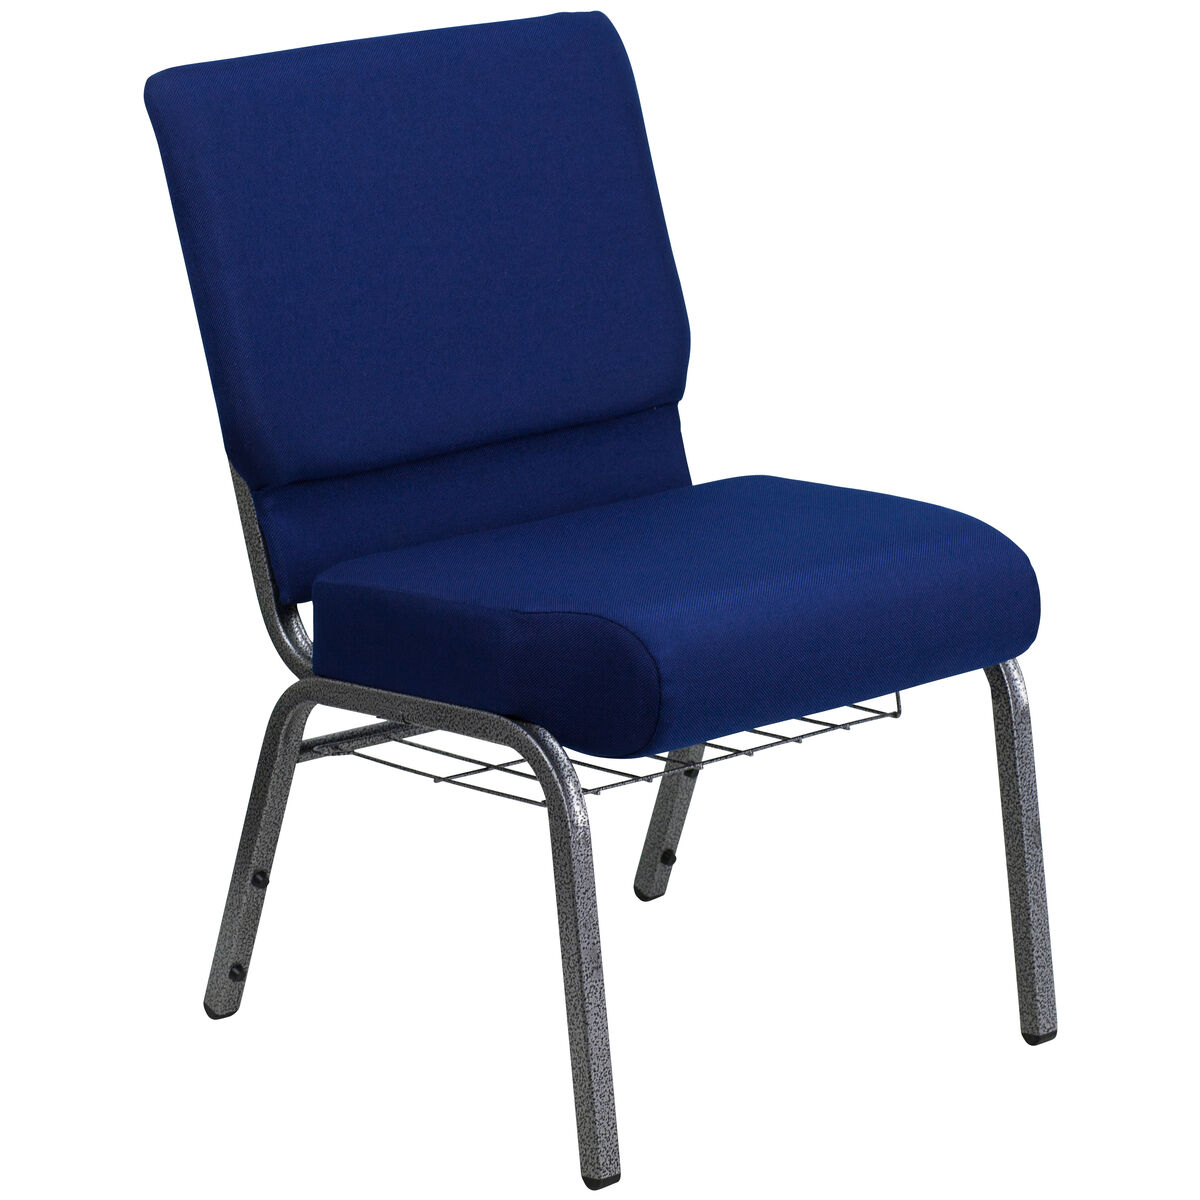 Flash furniture hercules series 21 39 39 w church chair in navy for Furniture 4 less